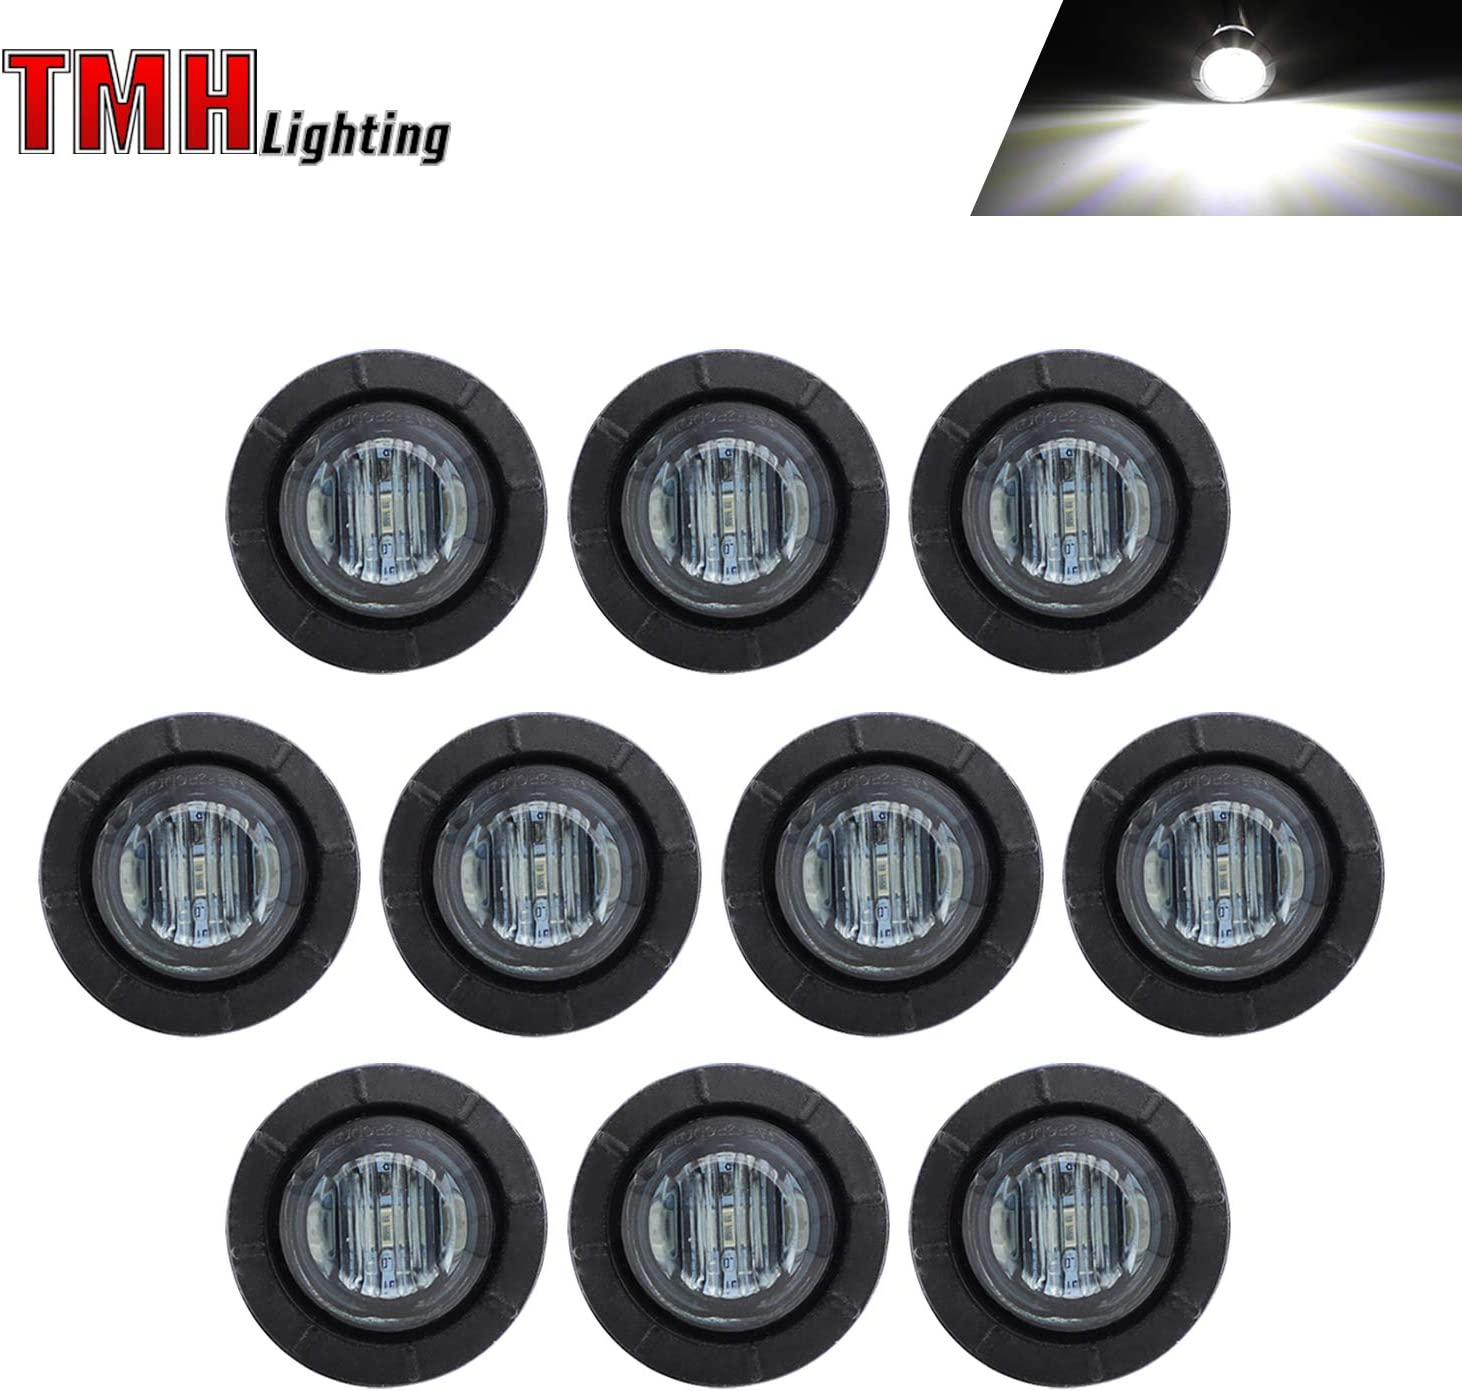 "10 Pcs TMH 3/4"" Inch Mount SMOKED LENS & White LED Clearance Markers, side marker lights, led marker lights, led side marker lights, led trailer marker lights, trailer marker light 711B2Bat95KL"